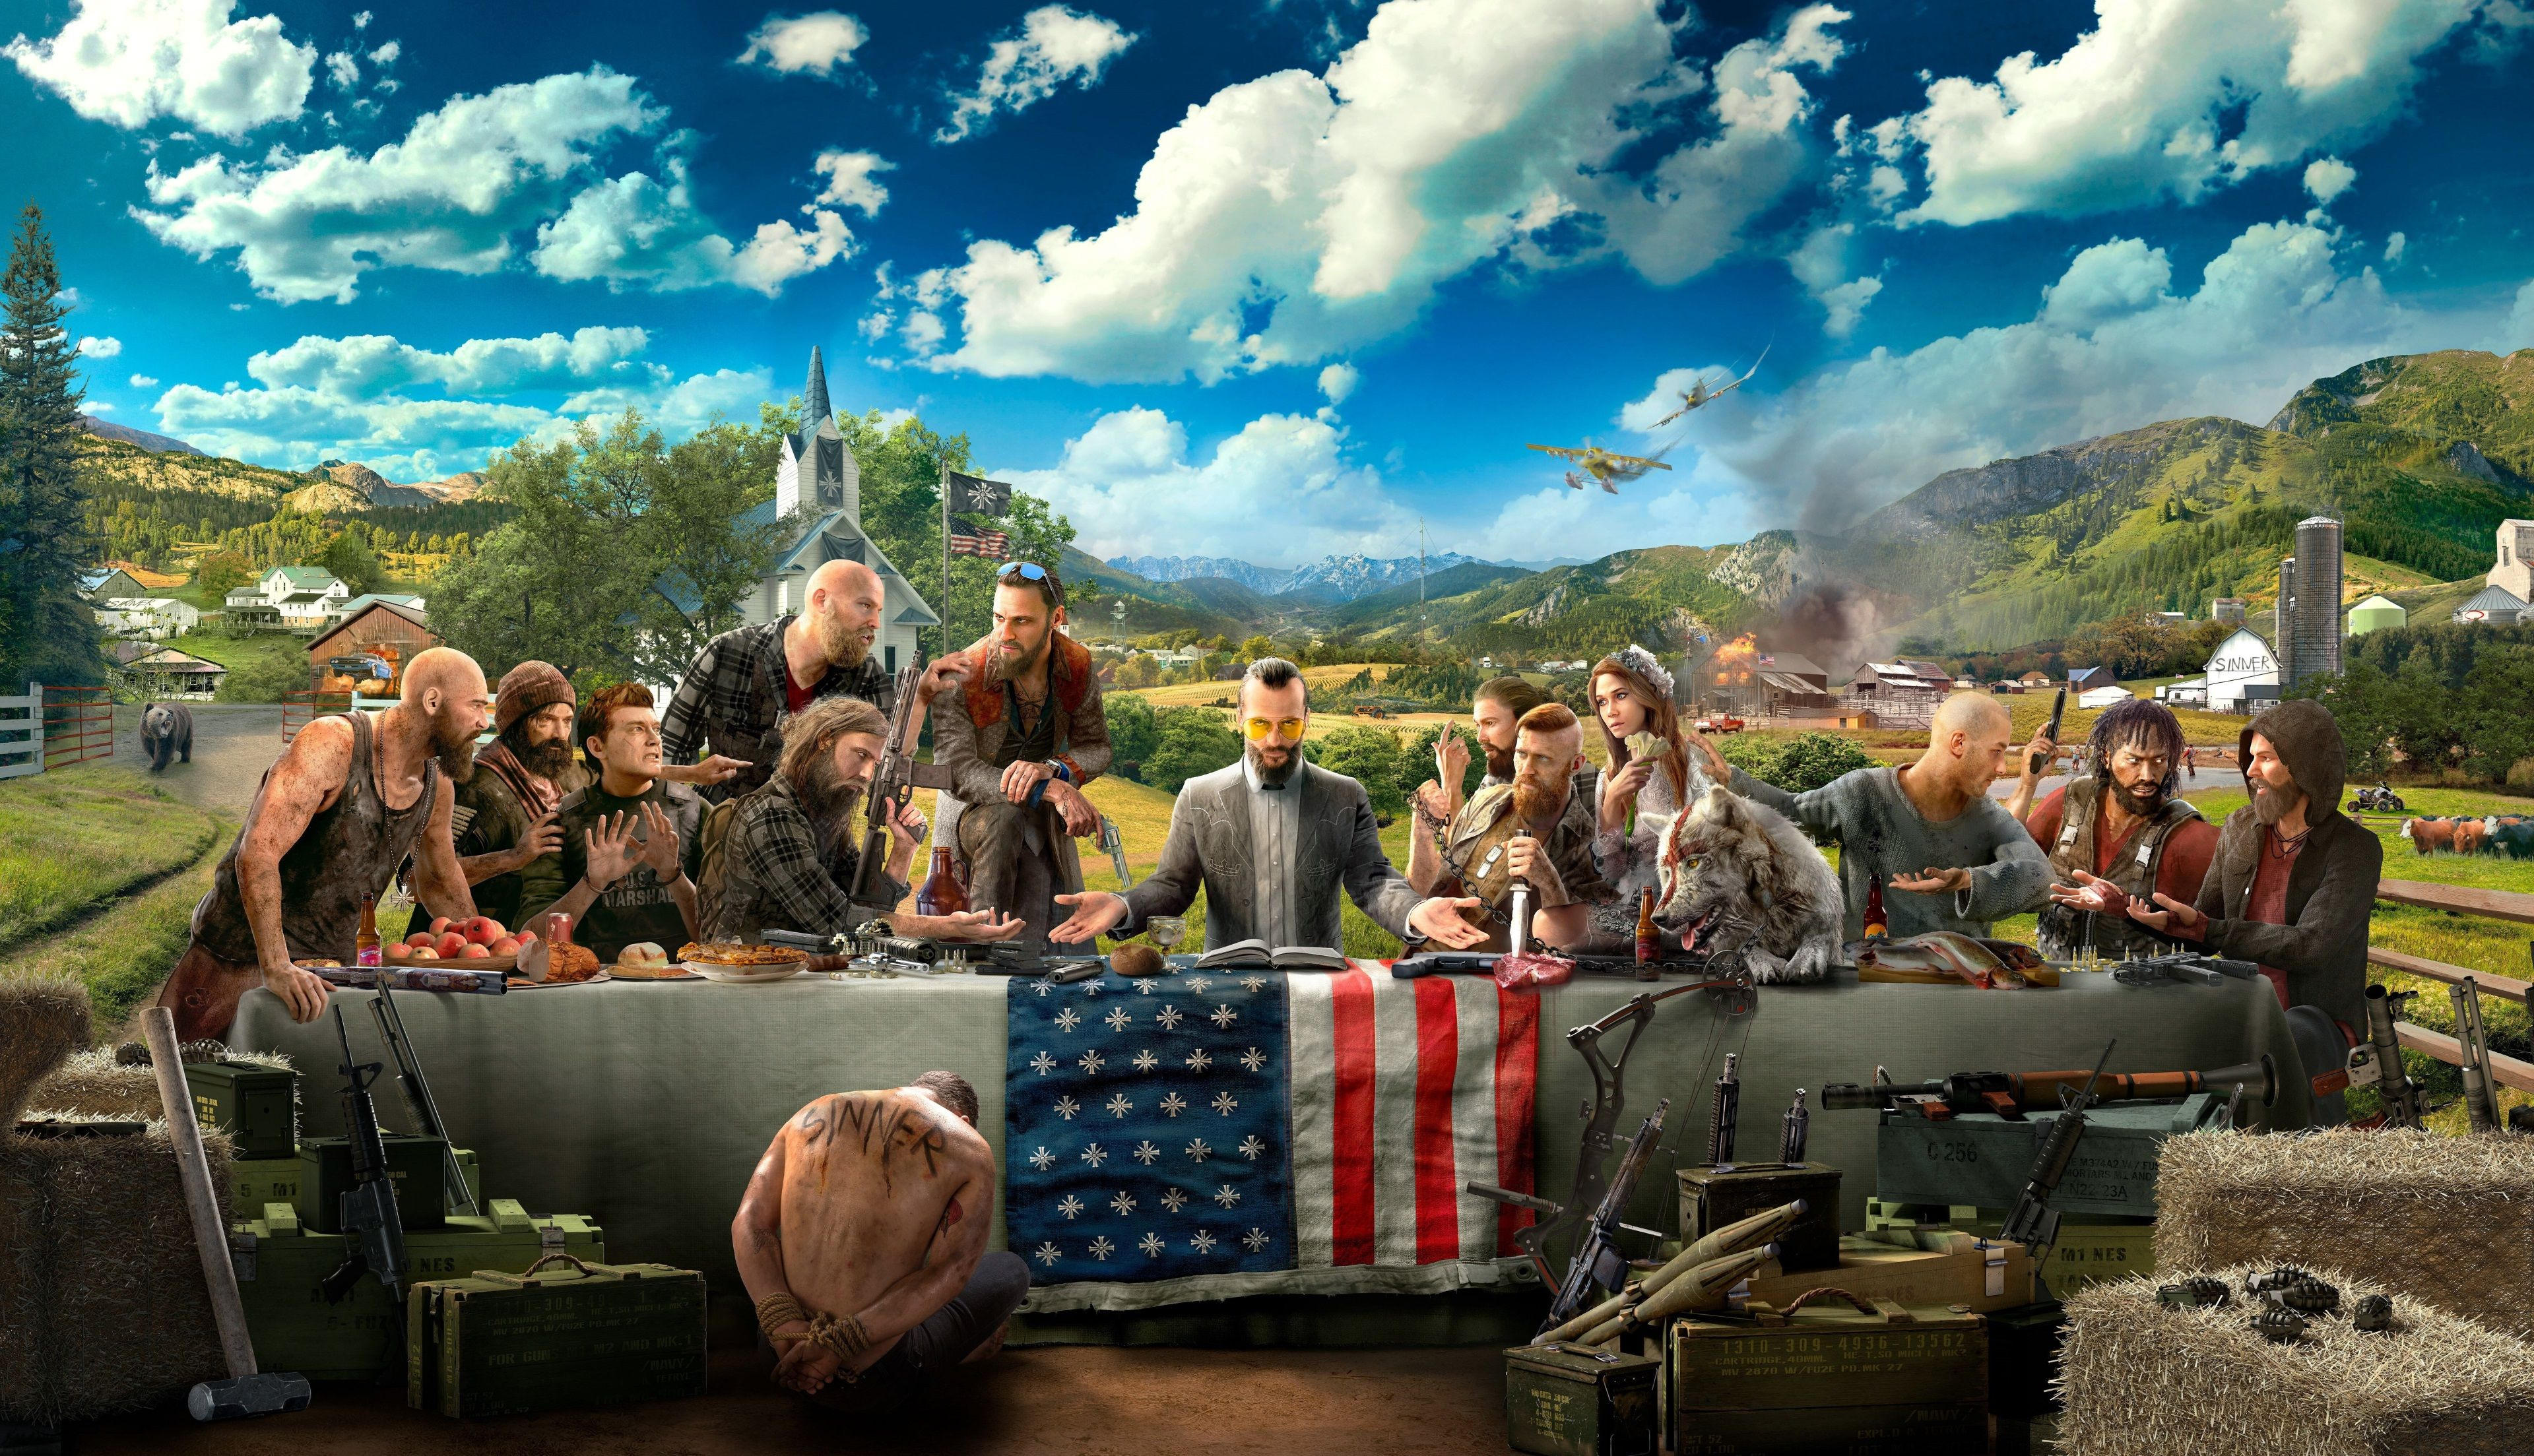 3840x2207 Far Cry 5 4k Best Wallpaper For Computer Desktop Far Cry 5 Far Cry 5 Game Ubisoft